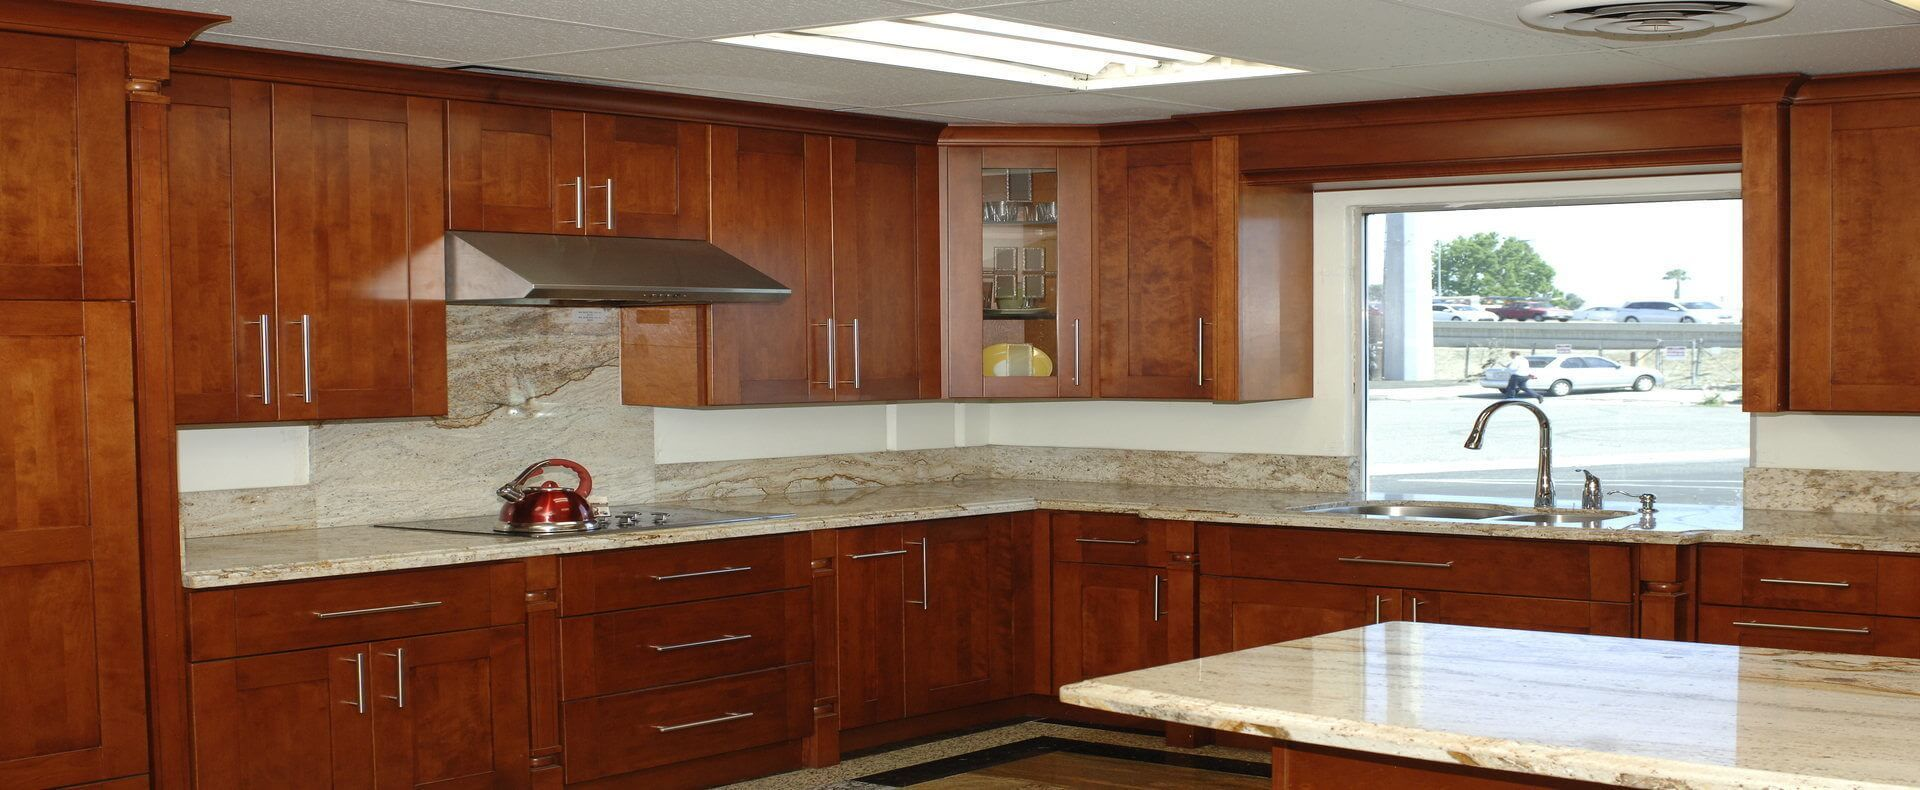 A Picture Of The Aiden Showroom Bianco Modeno Cabinets ...